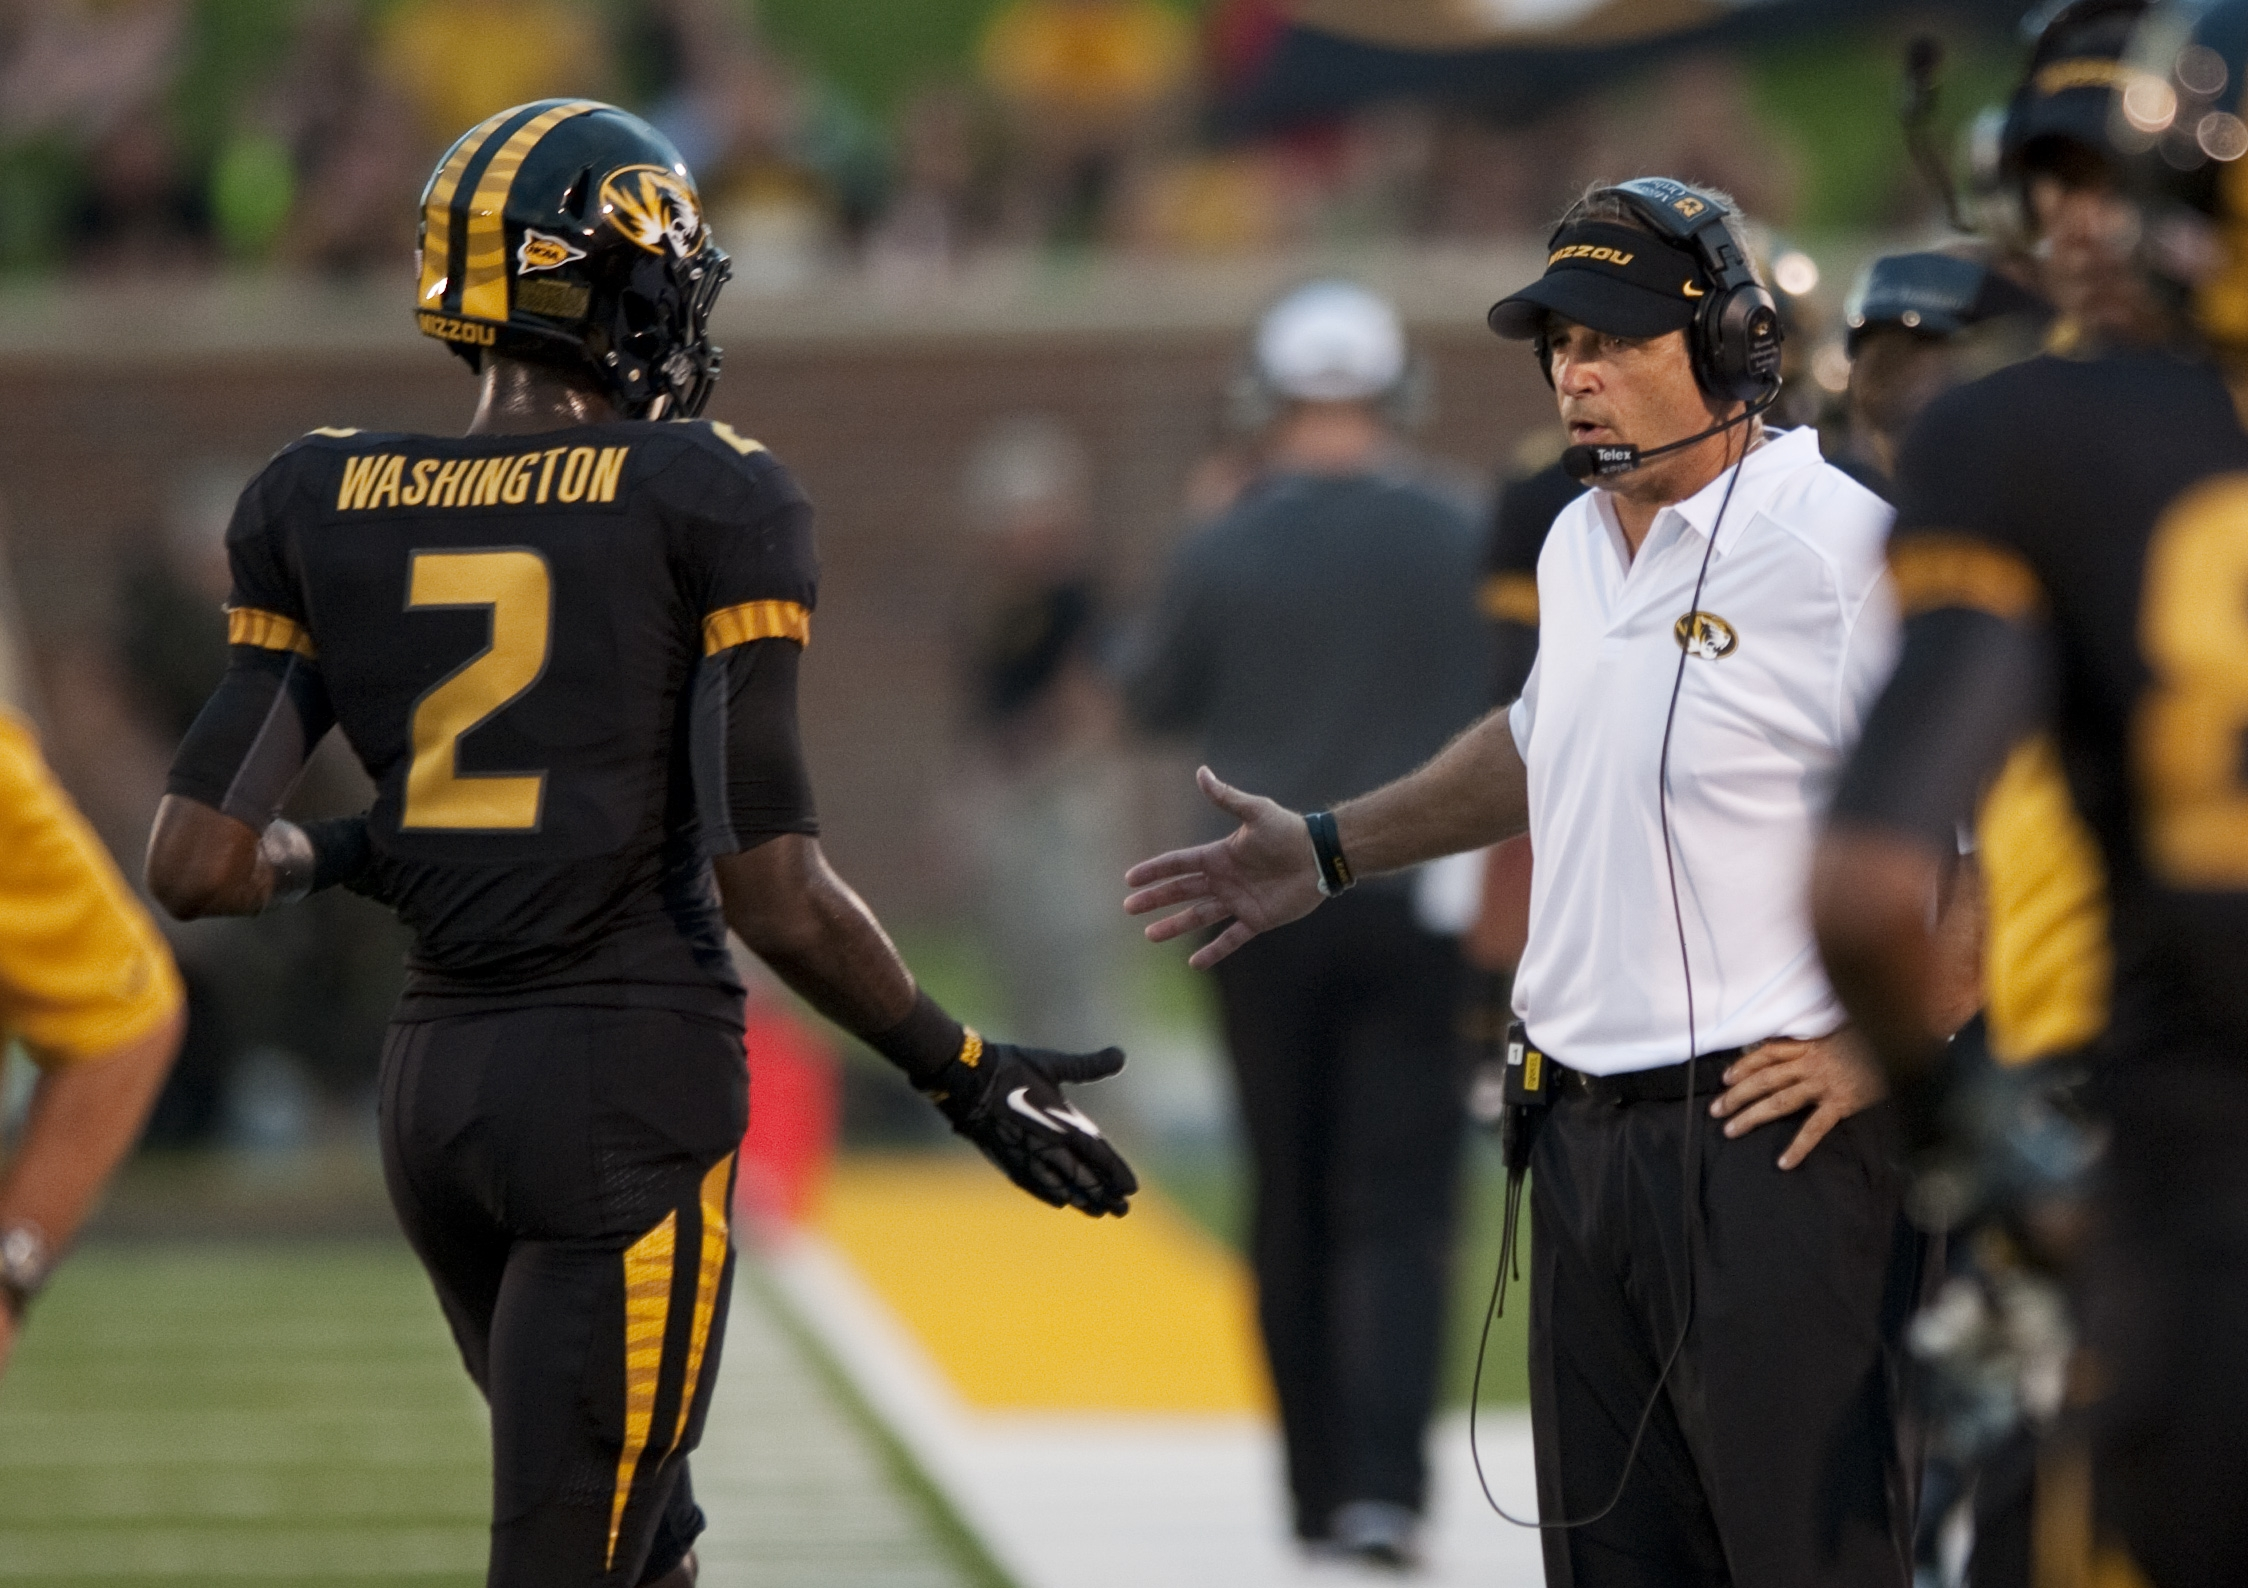 Missouri's offense took root in Ohio - The Blade